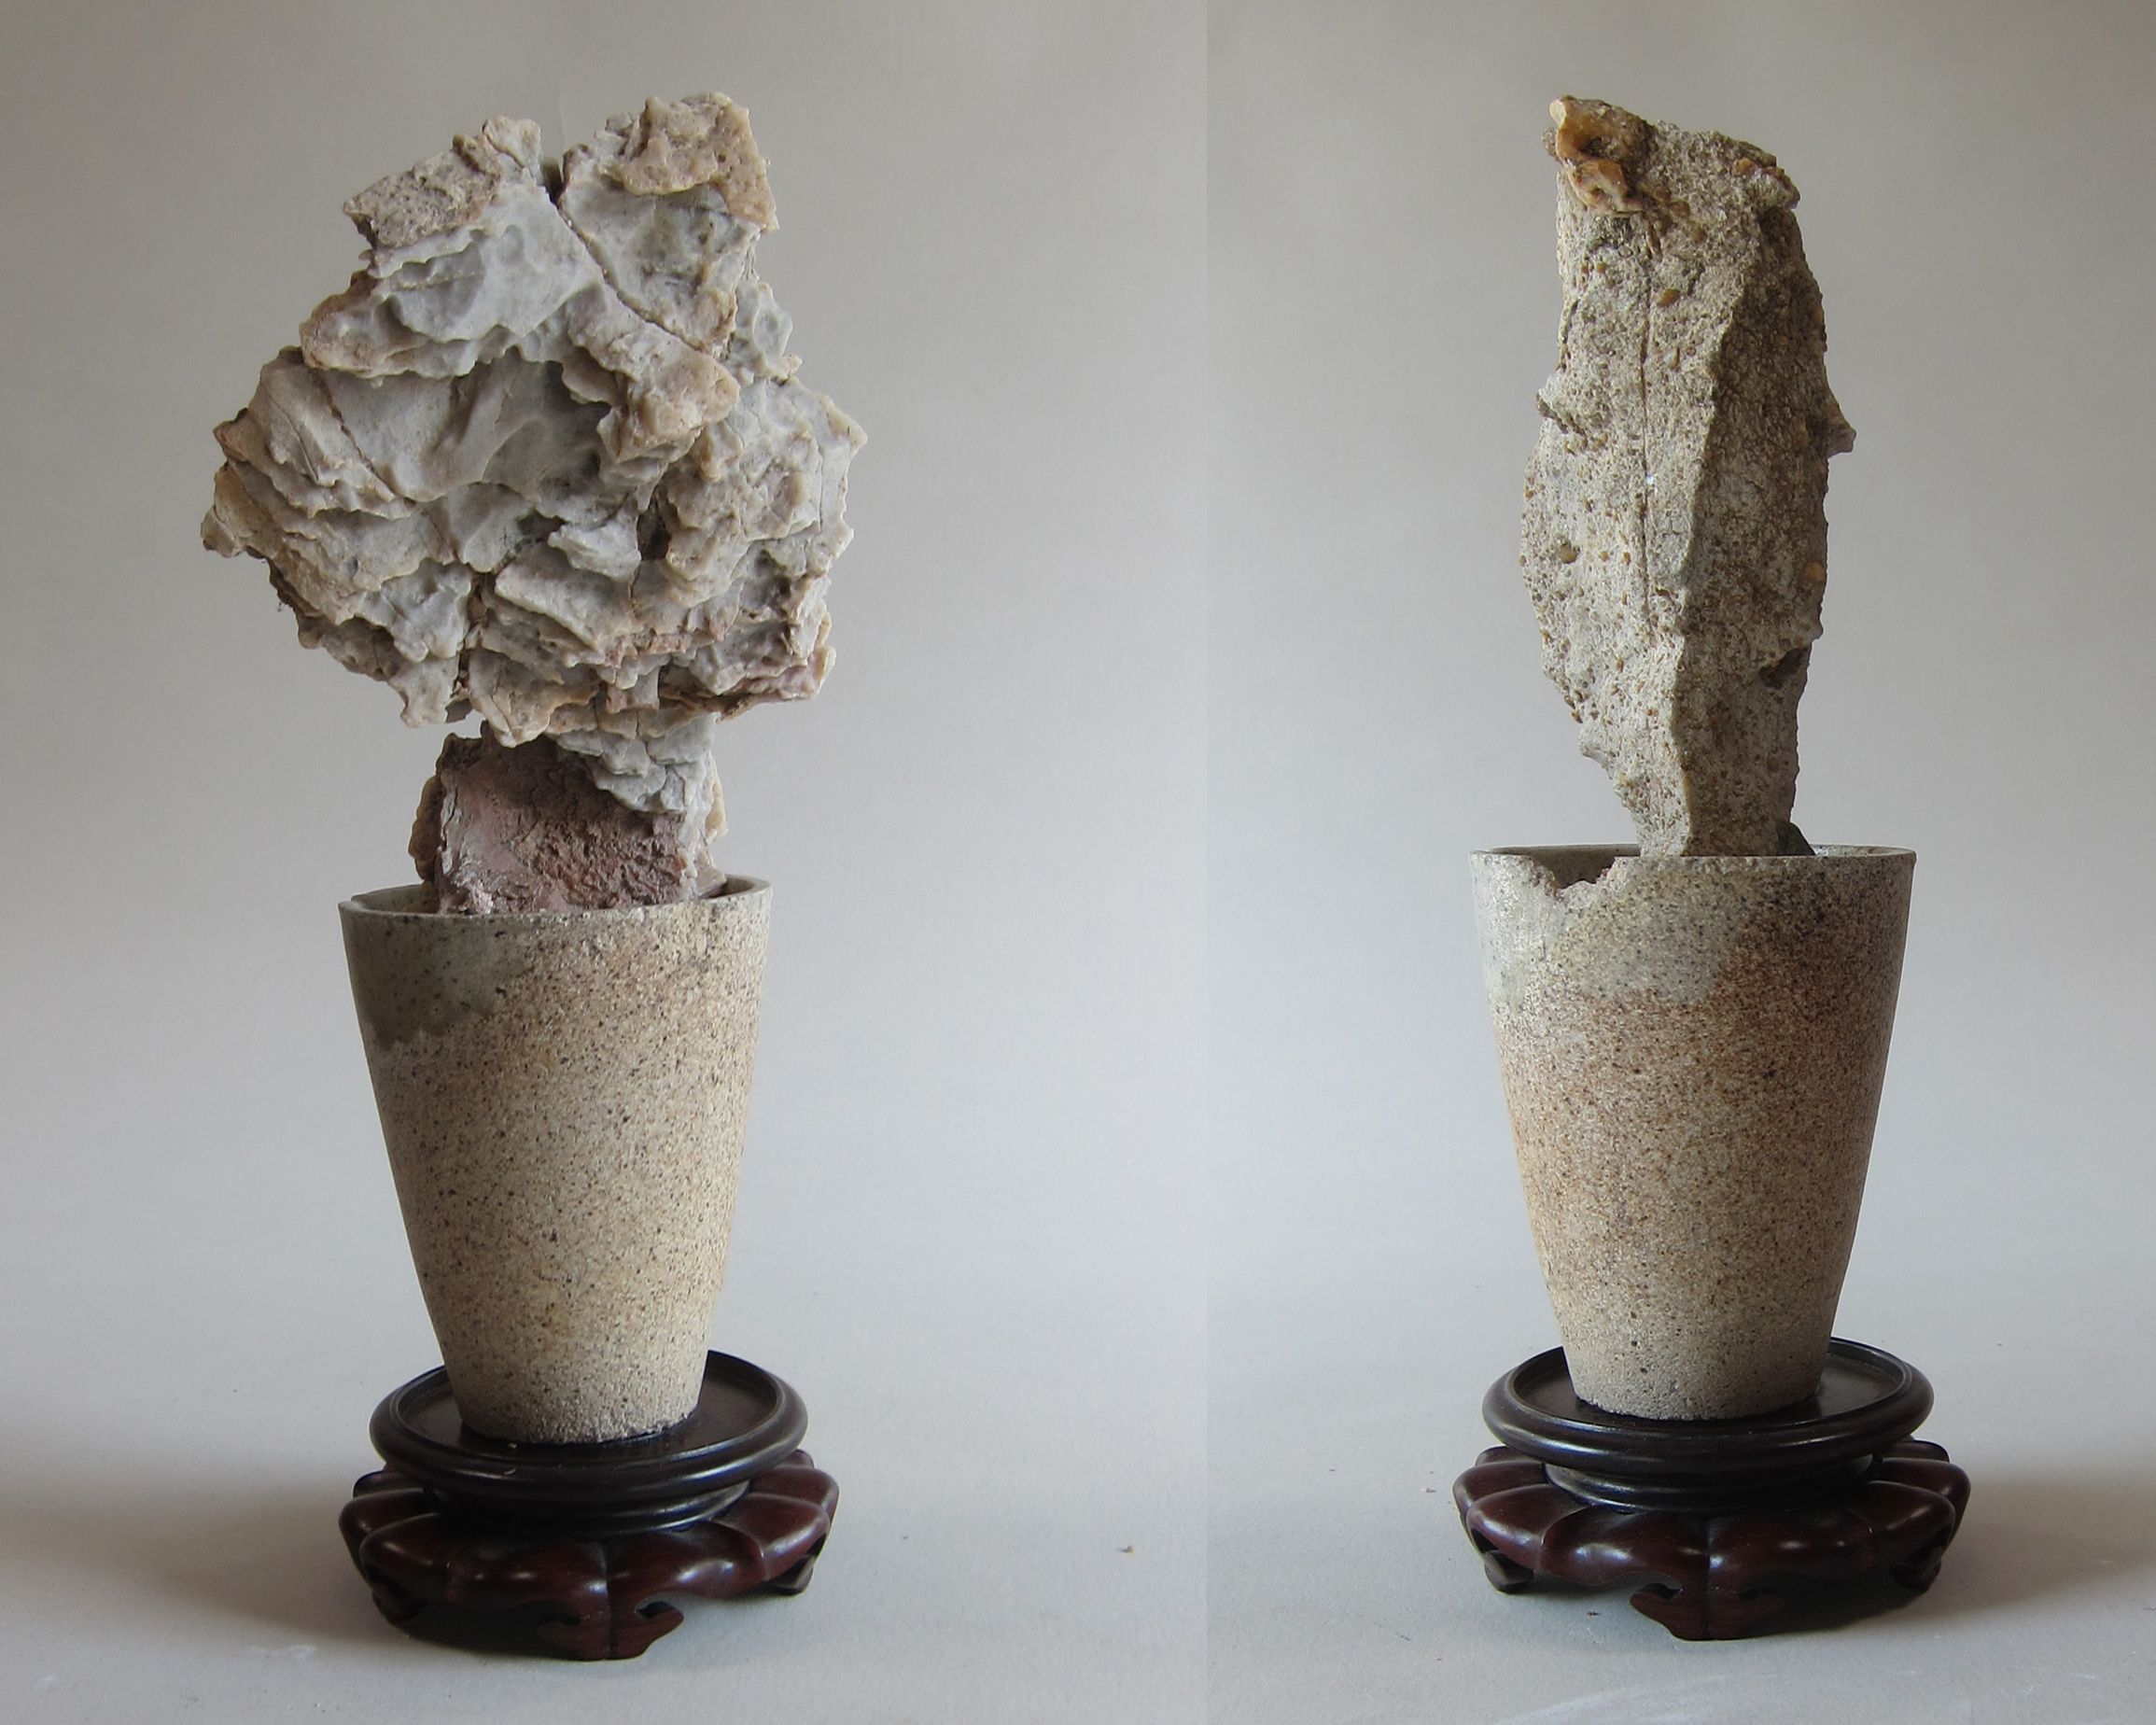 Mojave desert stone, ceramic foundry cup, wood base